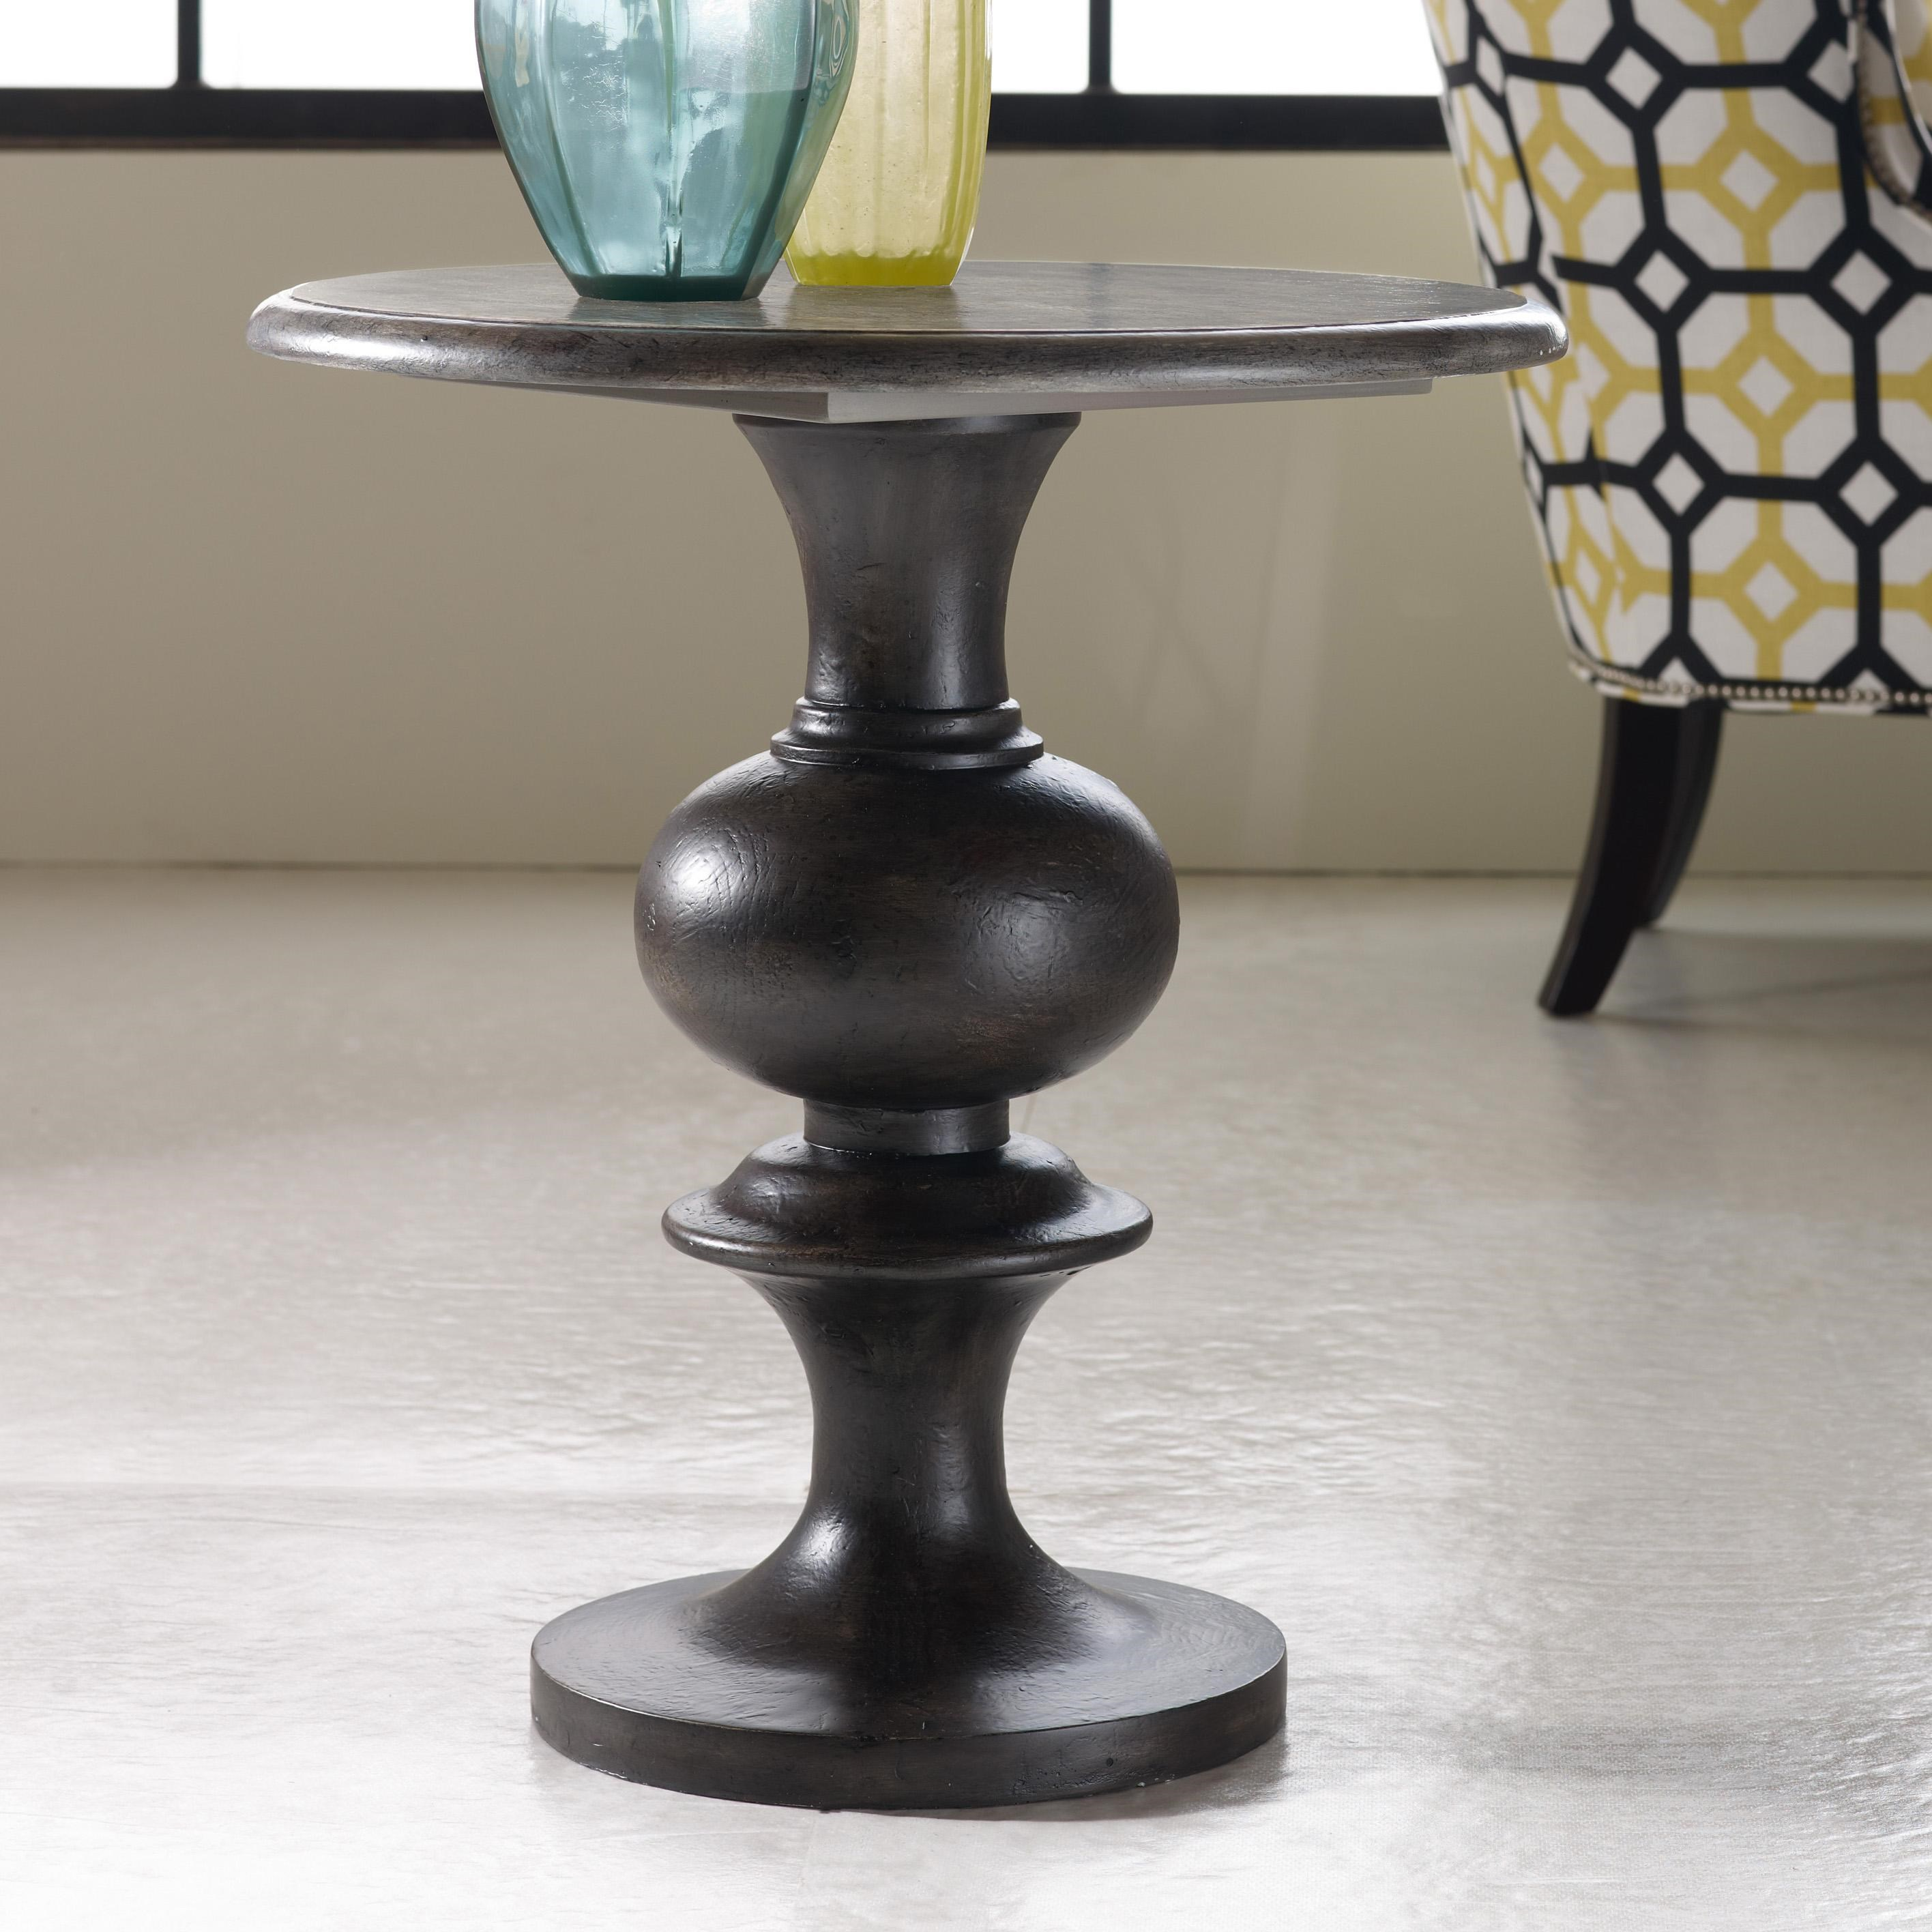 Hamilton Home Mélange Hadley Round Top Pedestal Table